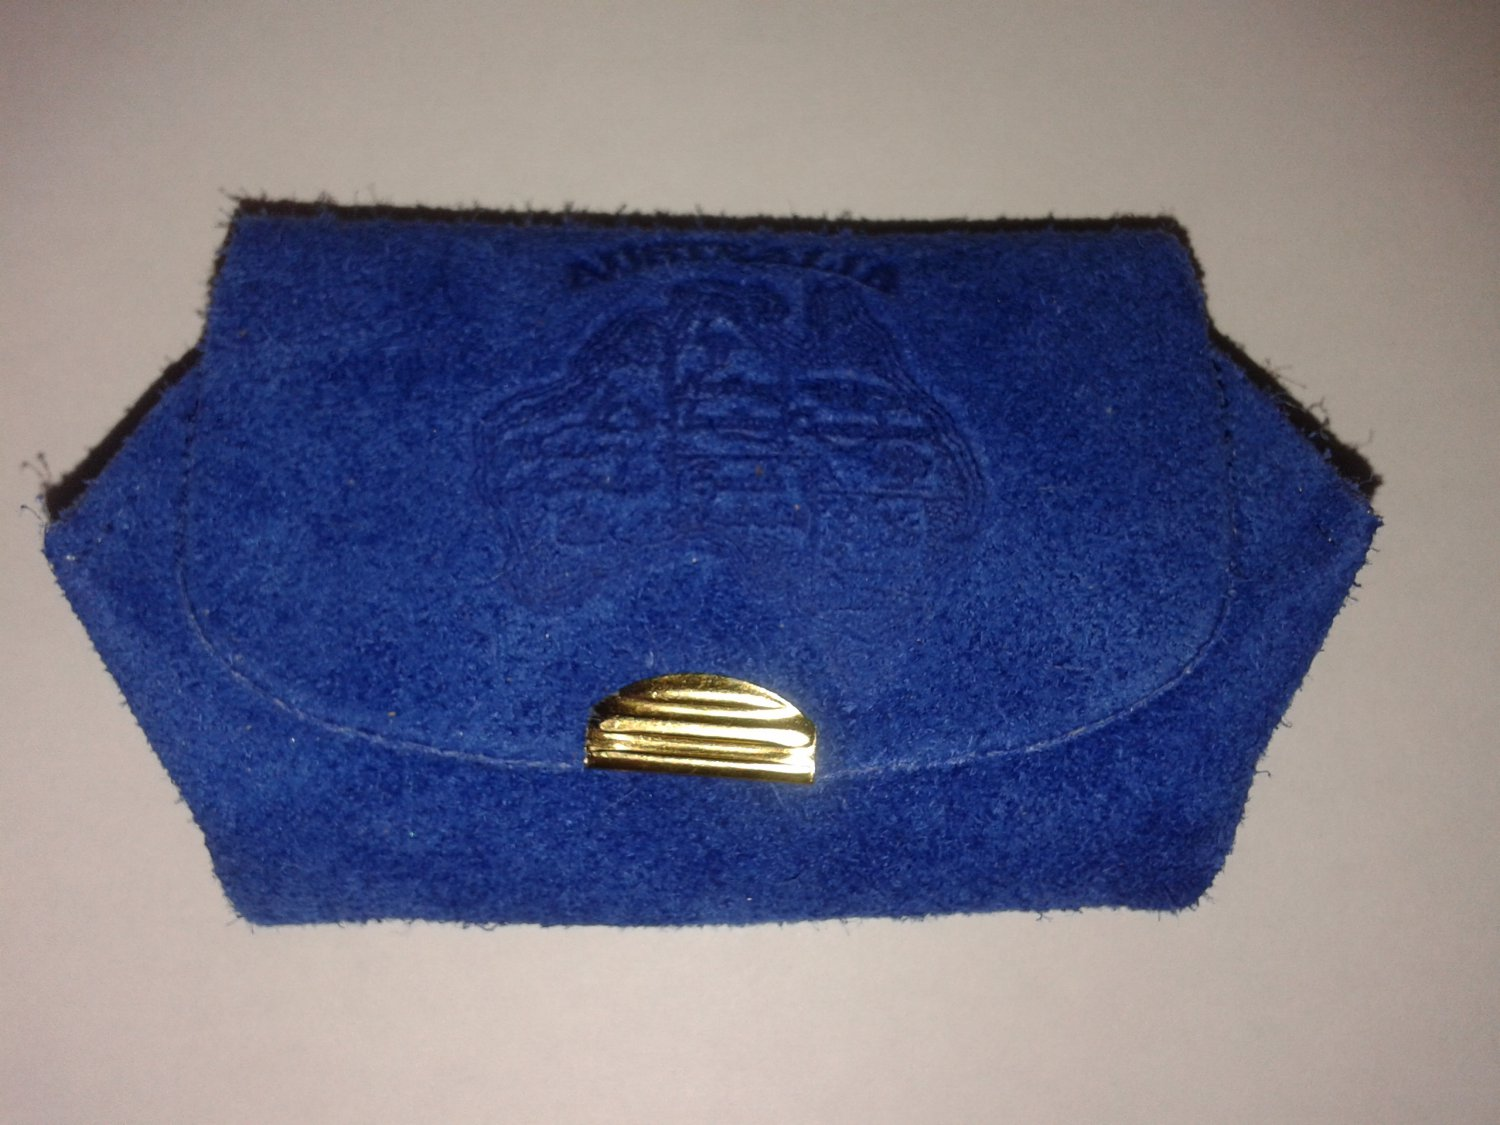 Blue Leather coins wallet